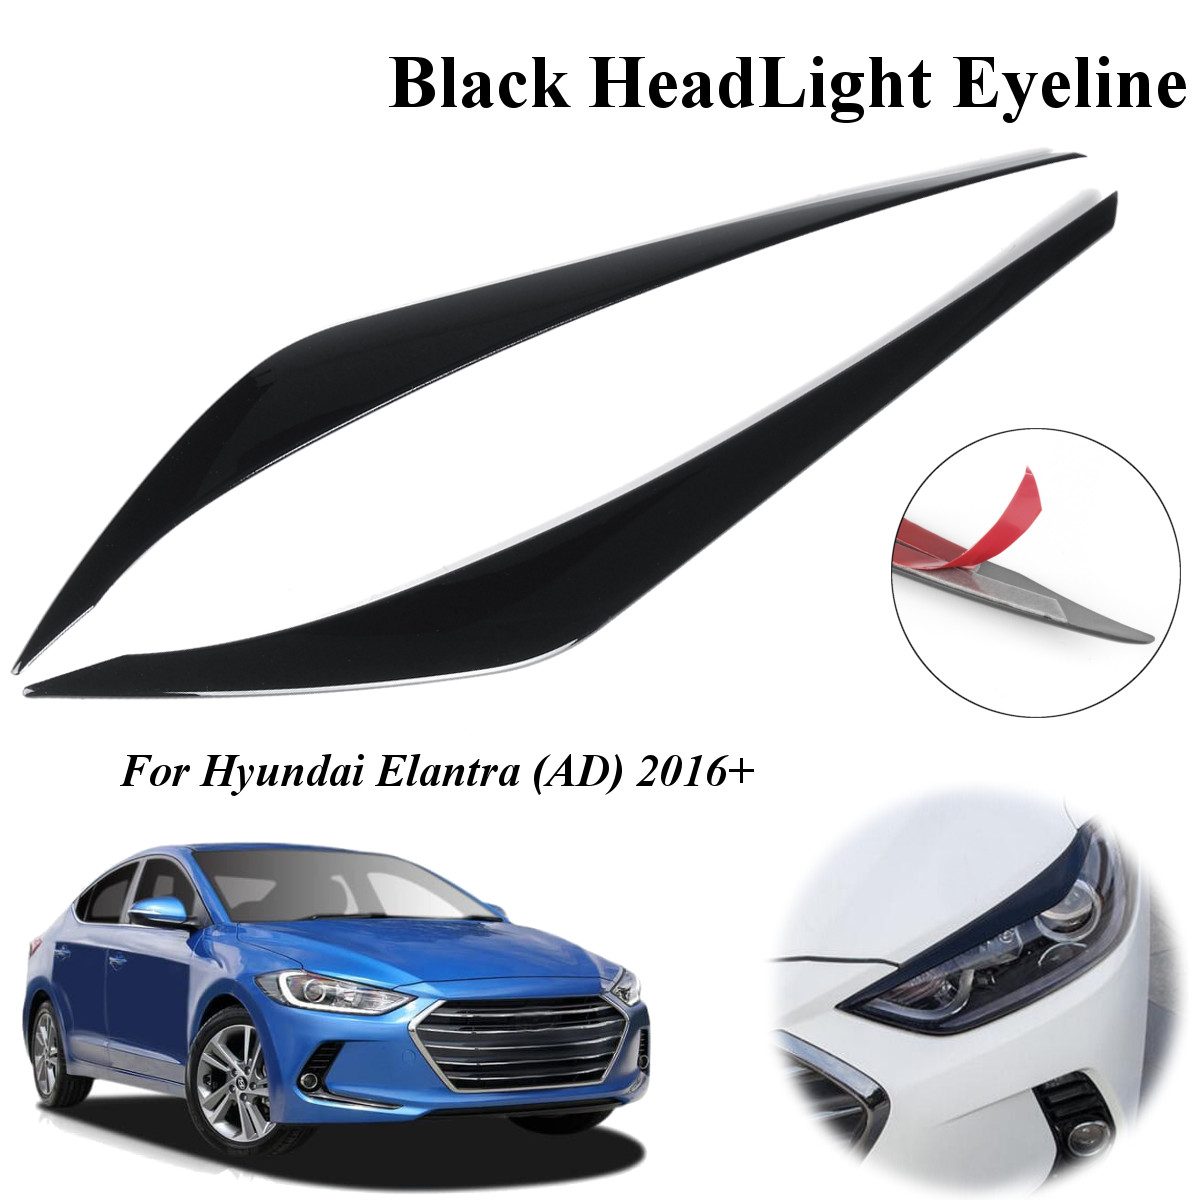 Pair Car Headlight Eyeline Point Molding ABS Decoration Trim Cover for Hyundai Elantra AD 2016 2017 2018 Car Styling Sticker